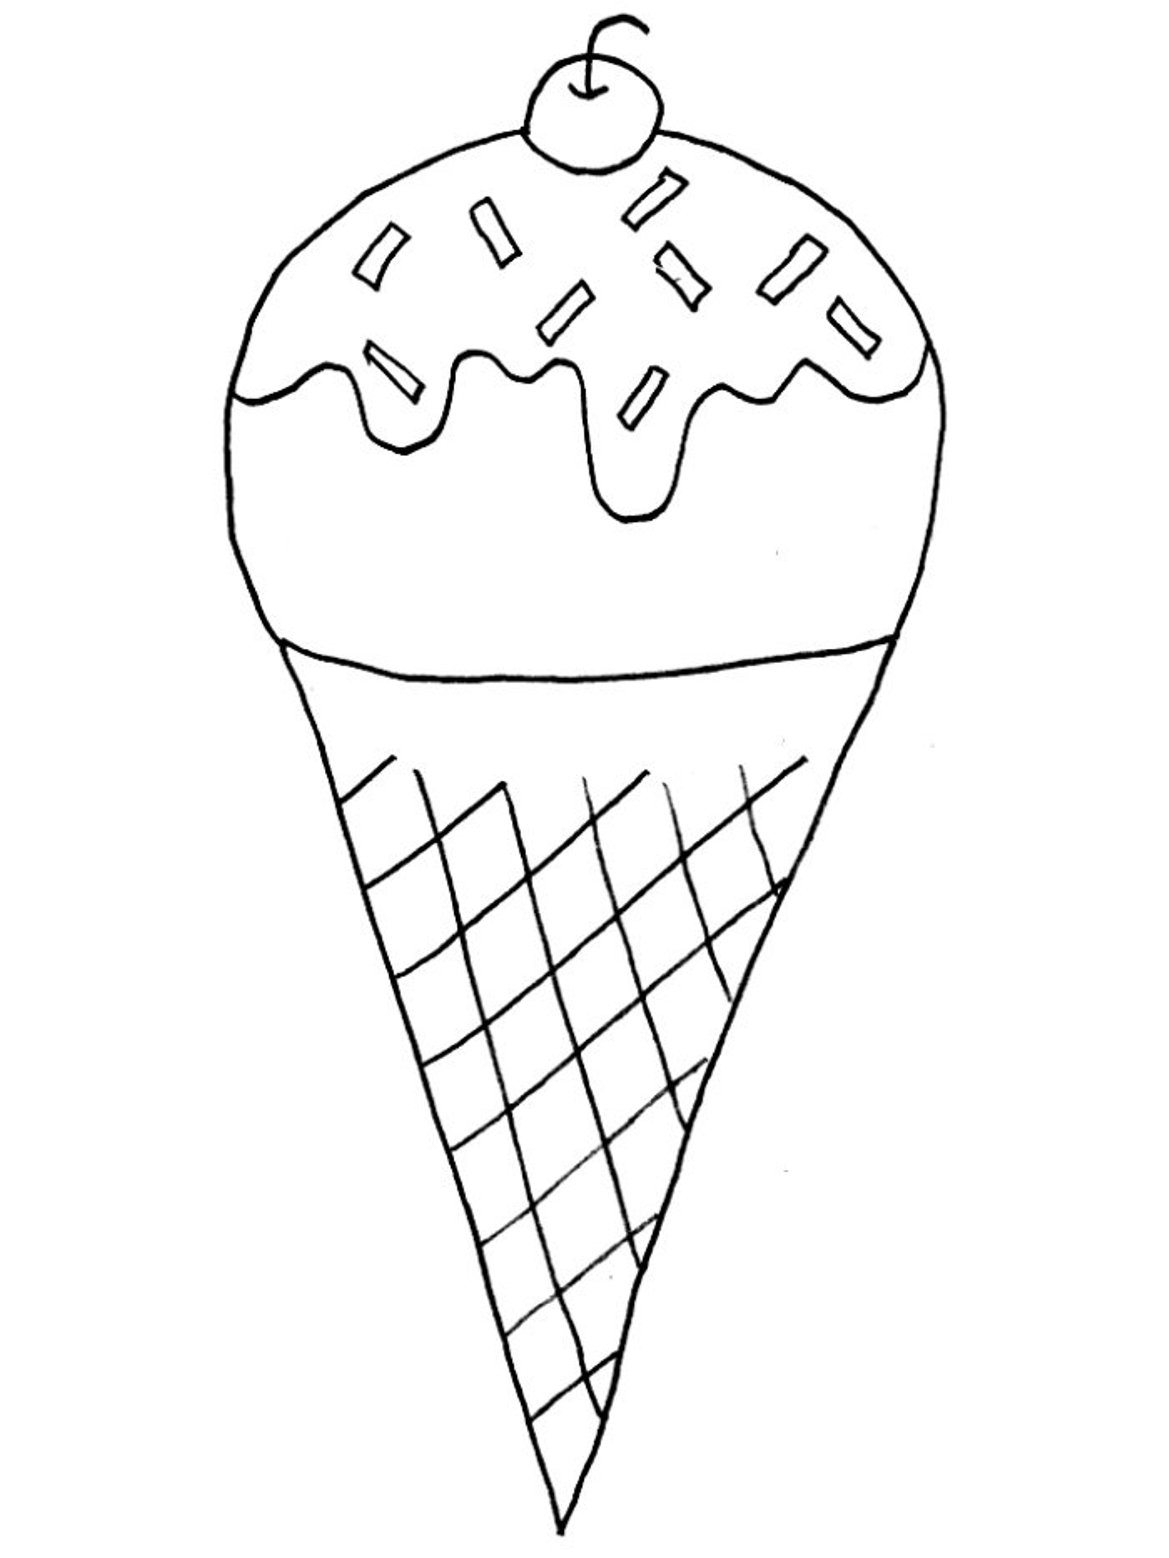 Cute Food Coloring Pages Printable Food Coloring Pages With Sheets Also Free Animal Kids